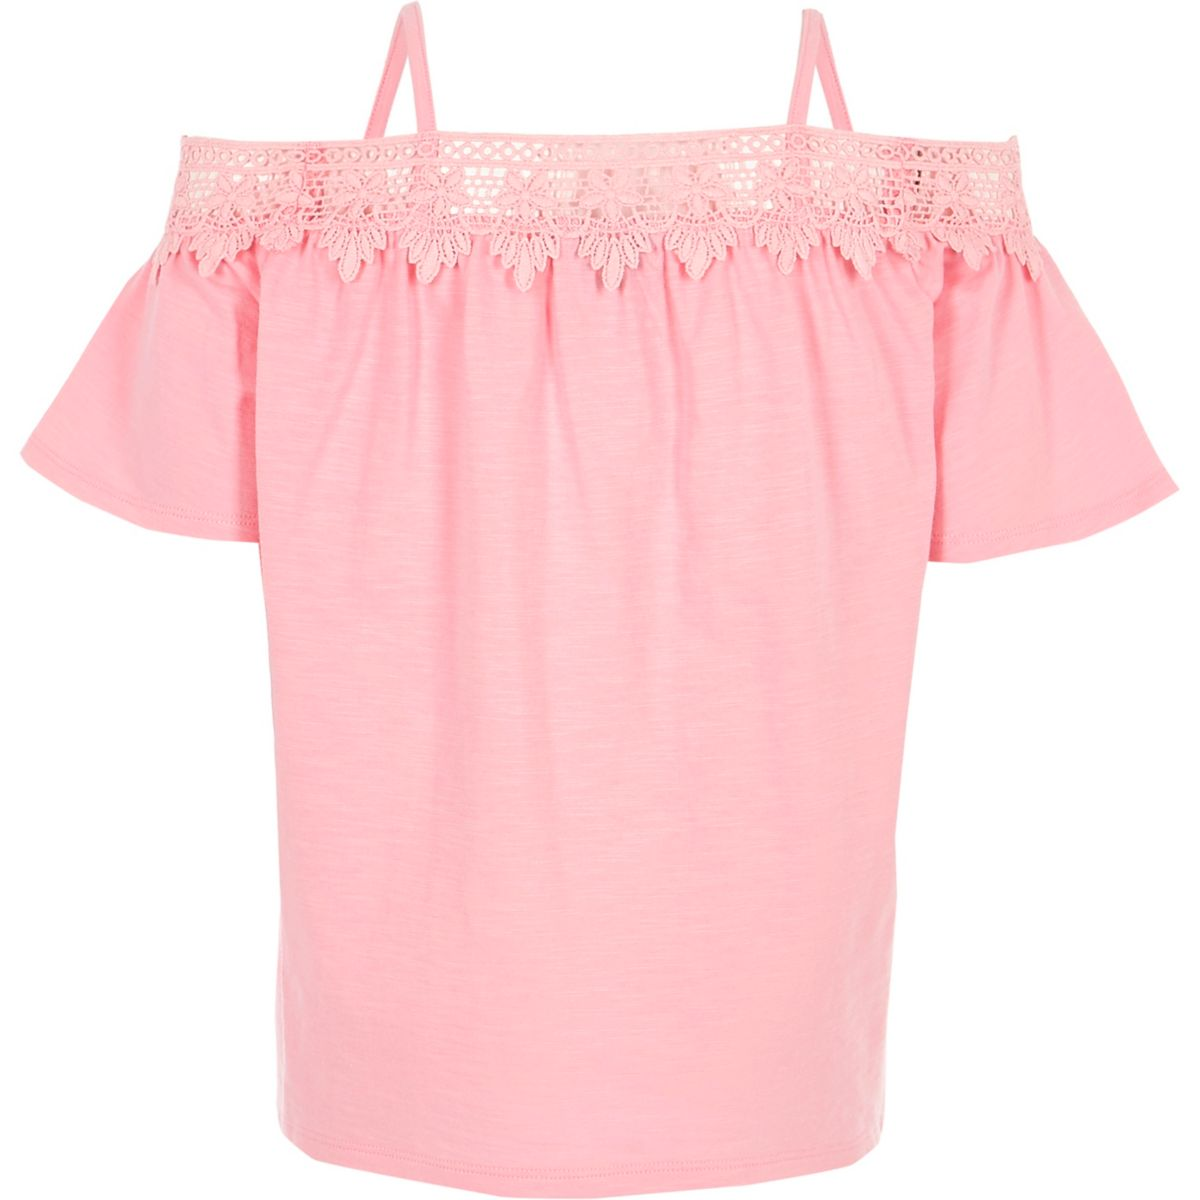 Girls pink crochet lace bardot top